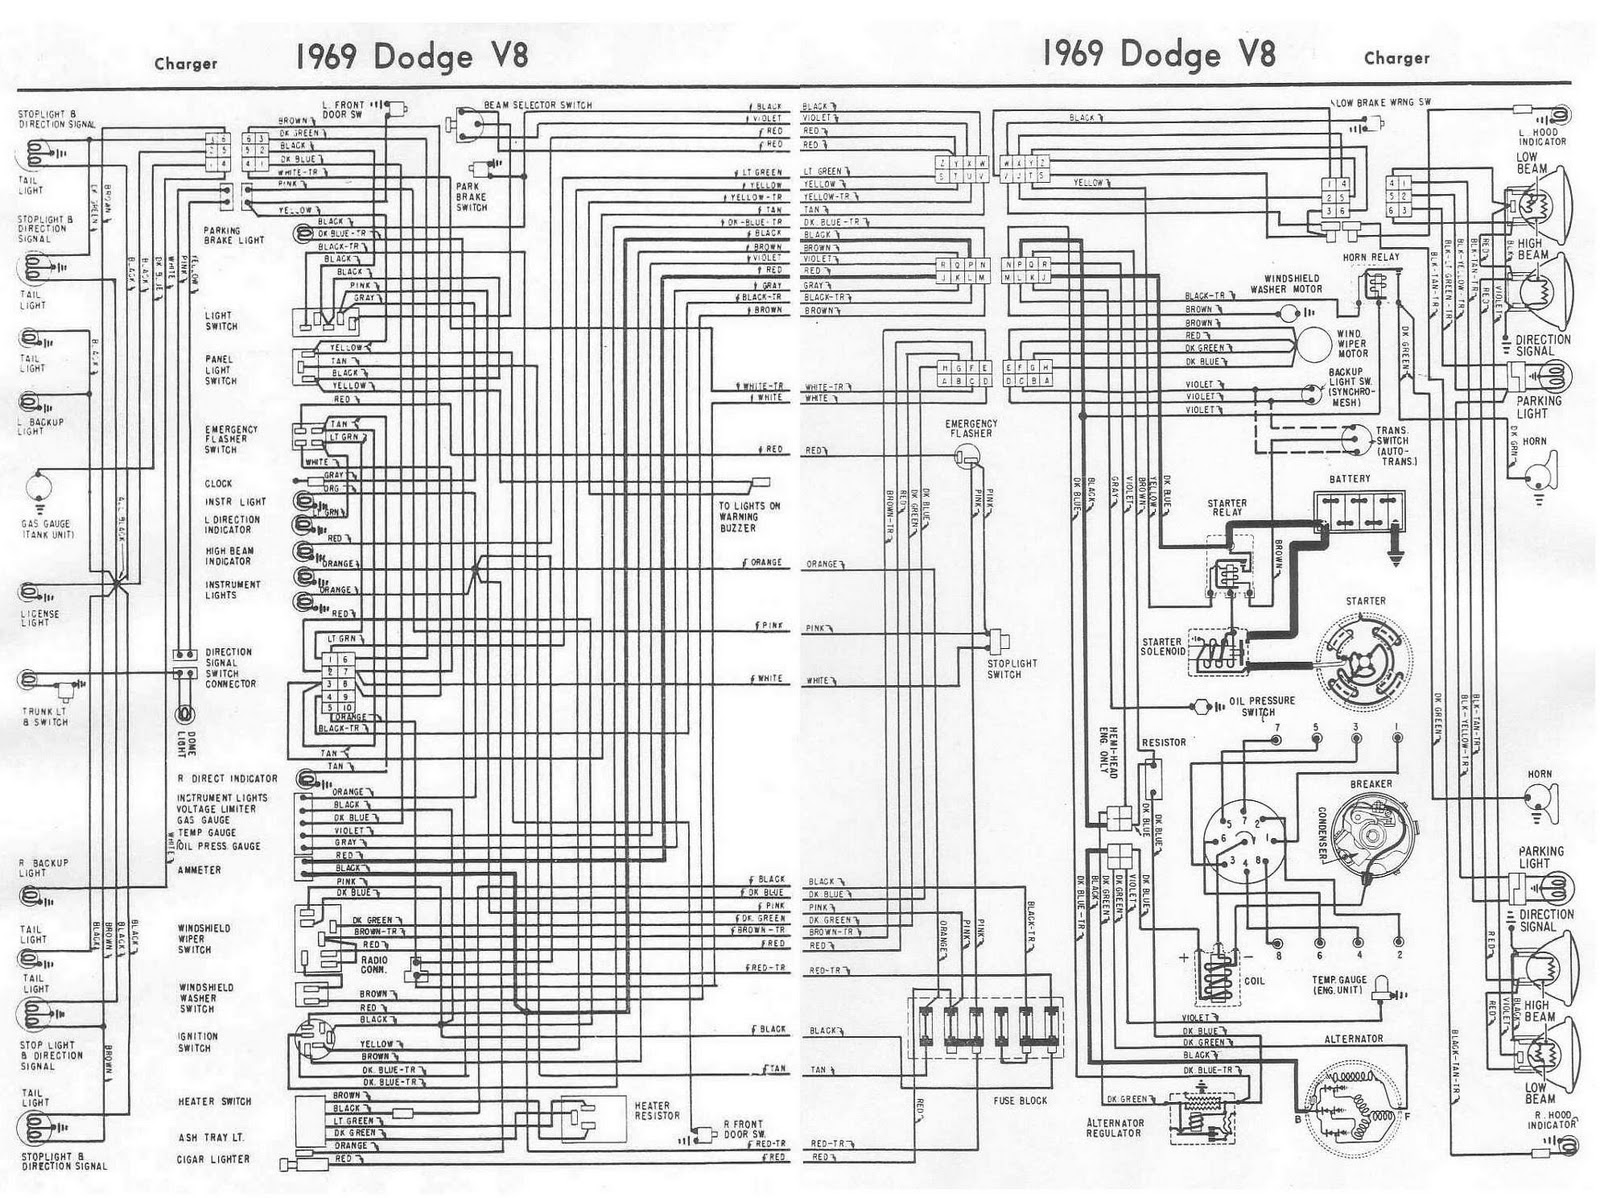 dodge charger 1969 v8 complete electrical wiring diagram peugeot 407 rd4 wiring diagram peugeot 407 rd4 wiring diagram